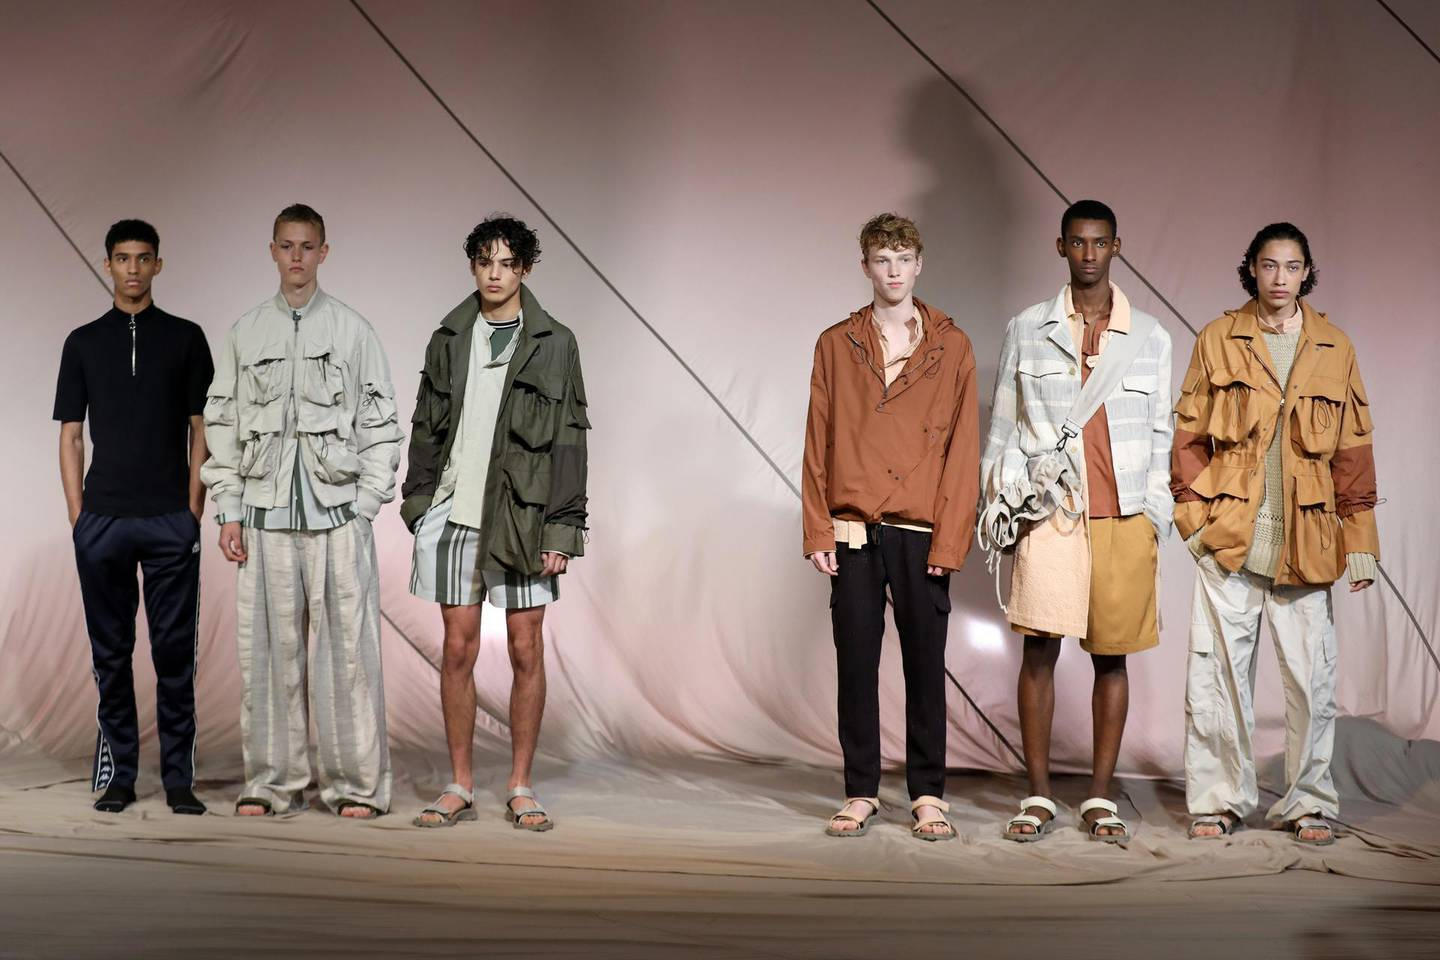 LONDON, ENGLAND - JUNE 10:  Models showcase designs at the QASIMI presentation during the London Fashion Week Men's June 2017 collections on June 10, 2017 in London, England.  (Photo by Tim P. Whitby/Getty Images)